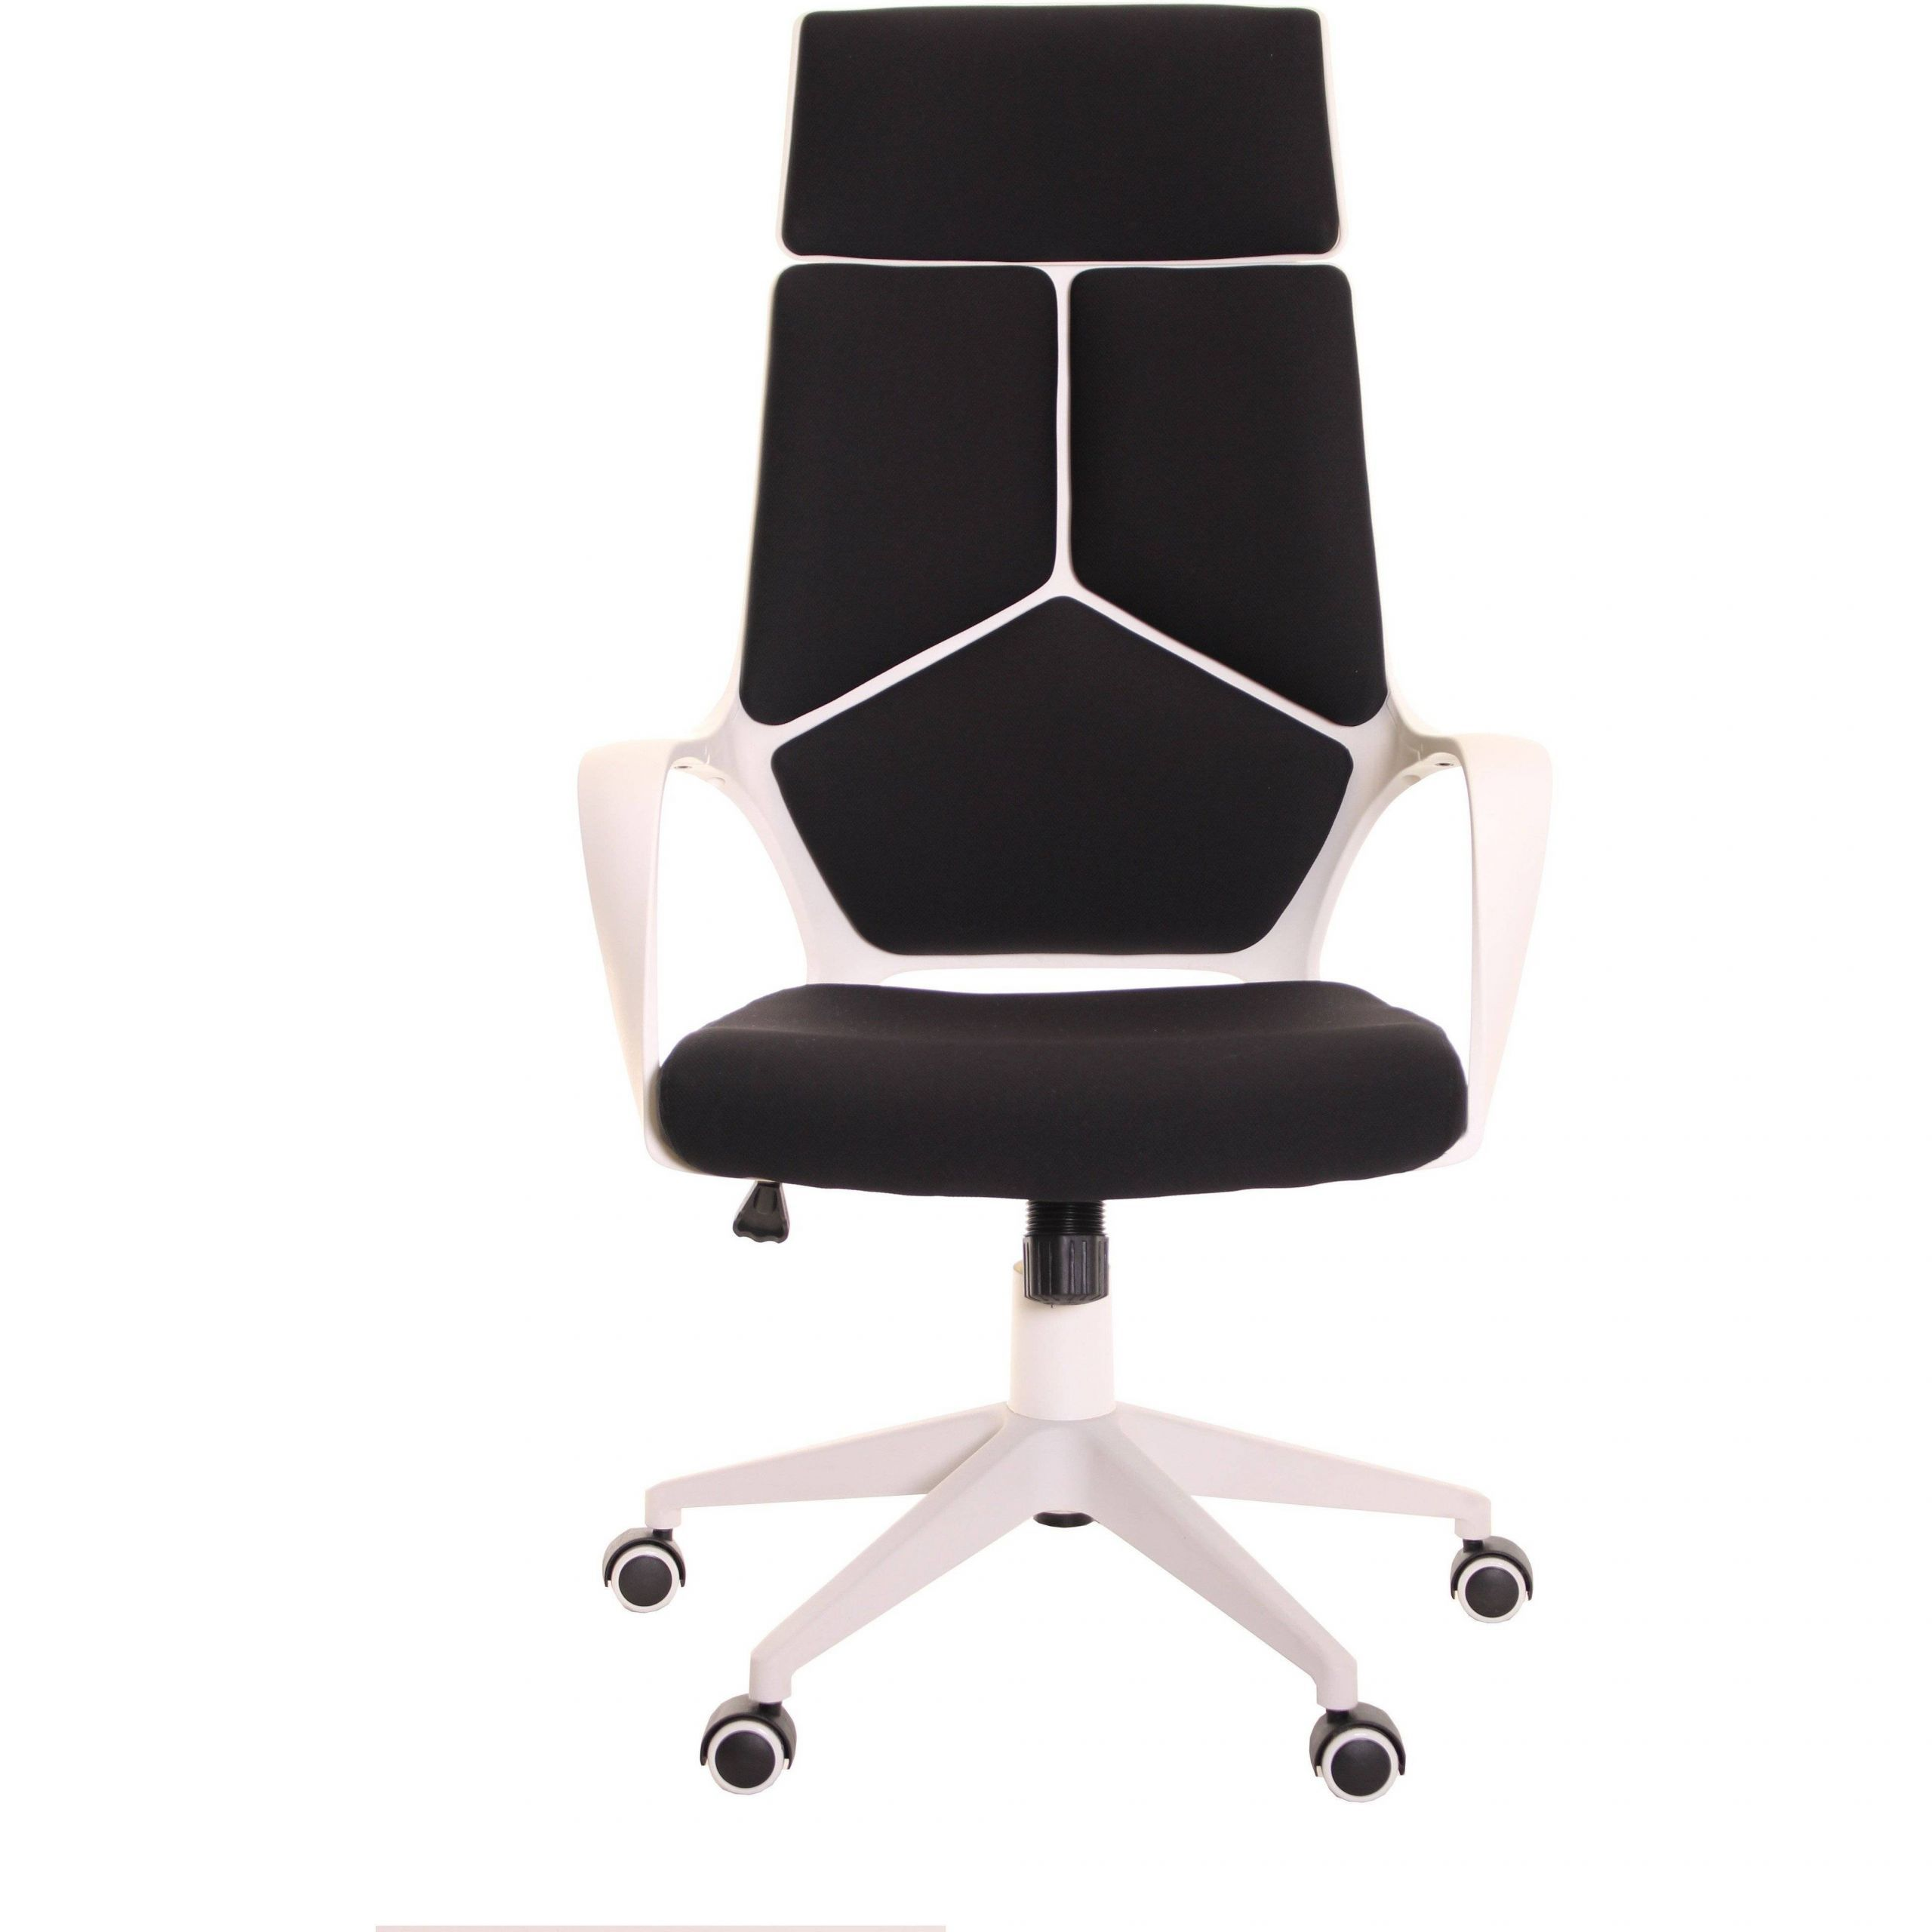 Modern Dining Chair Ergonomic Office Chair Modern Office Chair